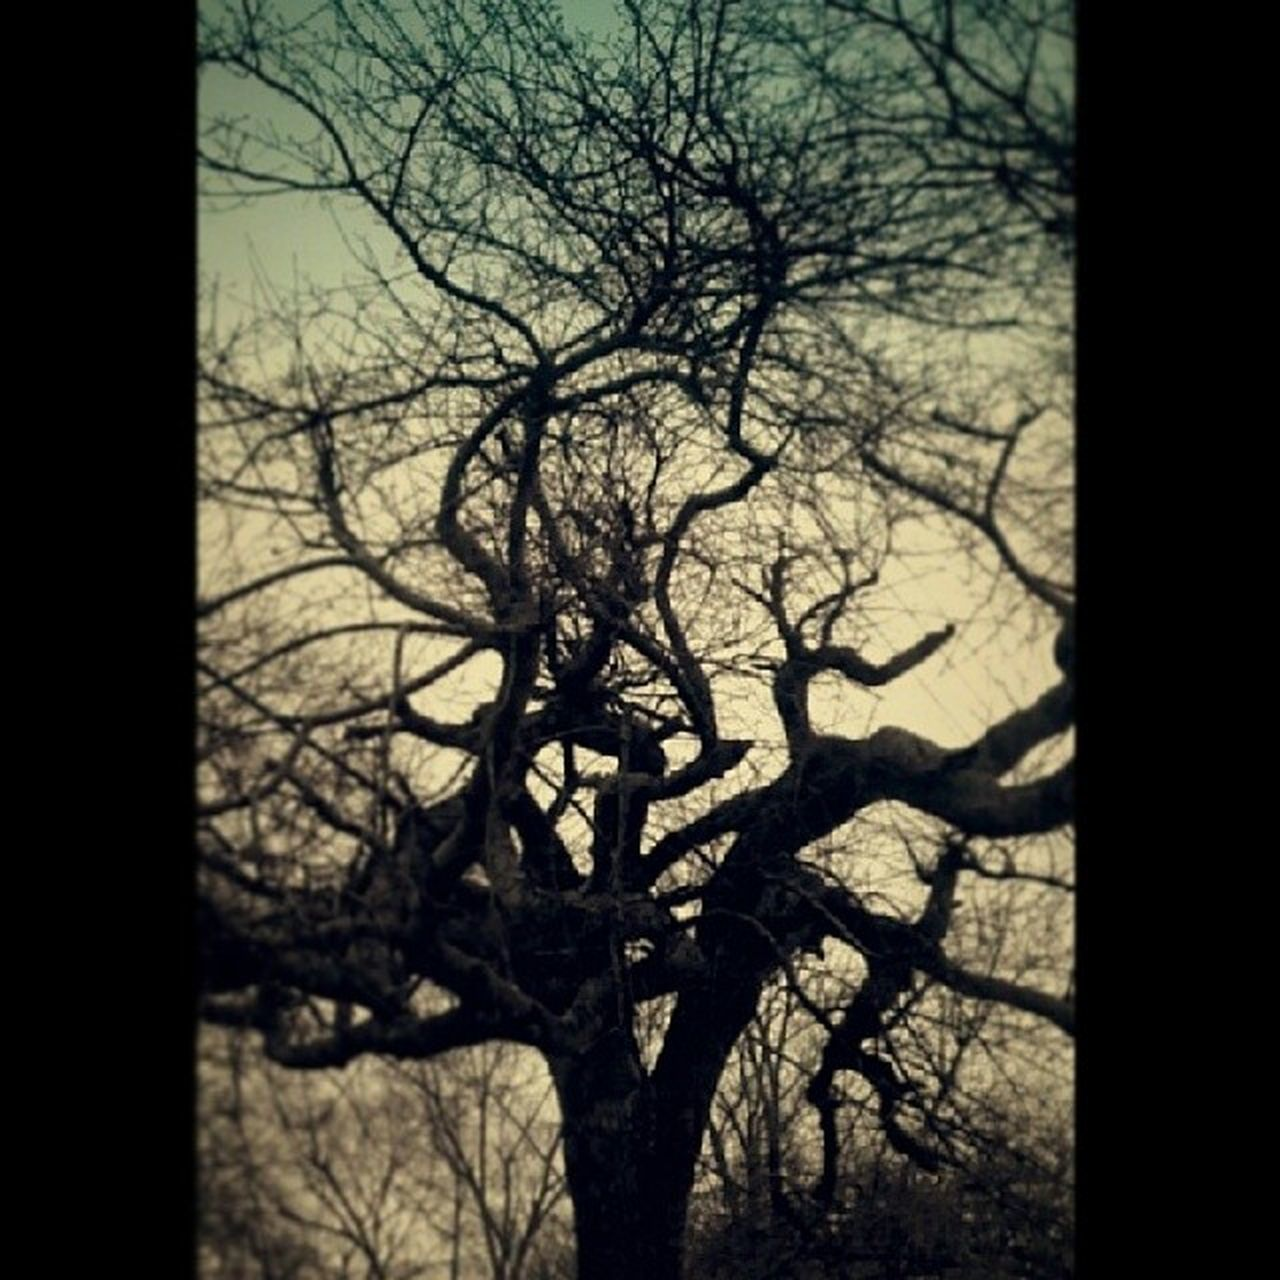 bare tree, tree, branch, tree trunk, silhouette, no people, outdoors, nature, day, lone, sky, beauty in nature, dead tree, close-up